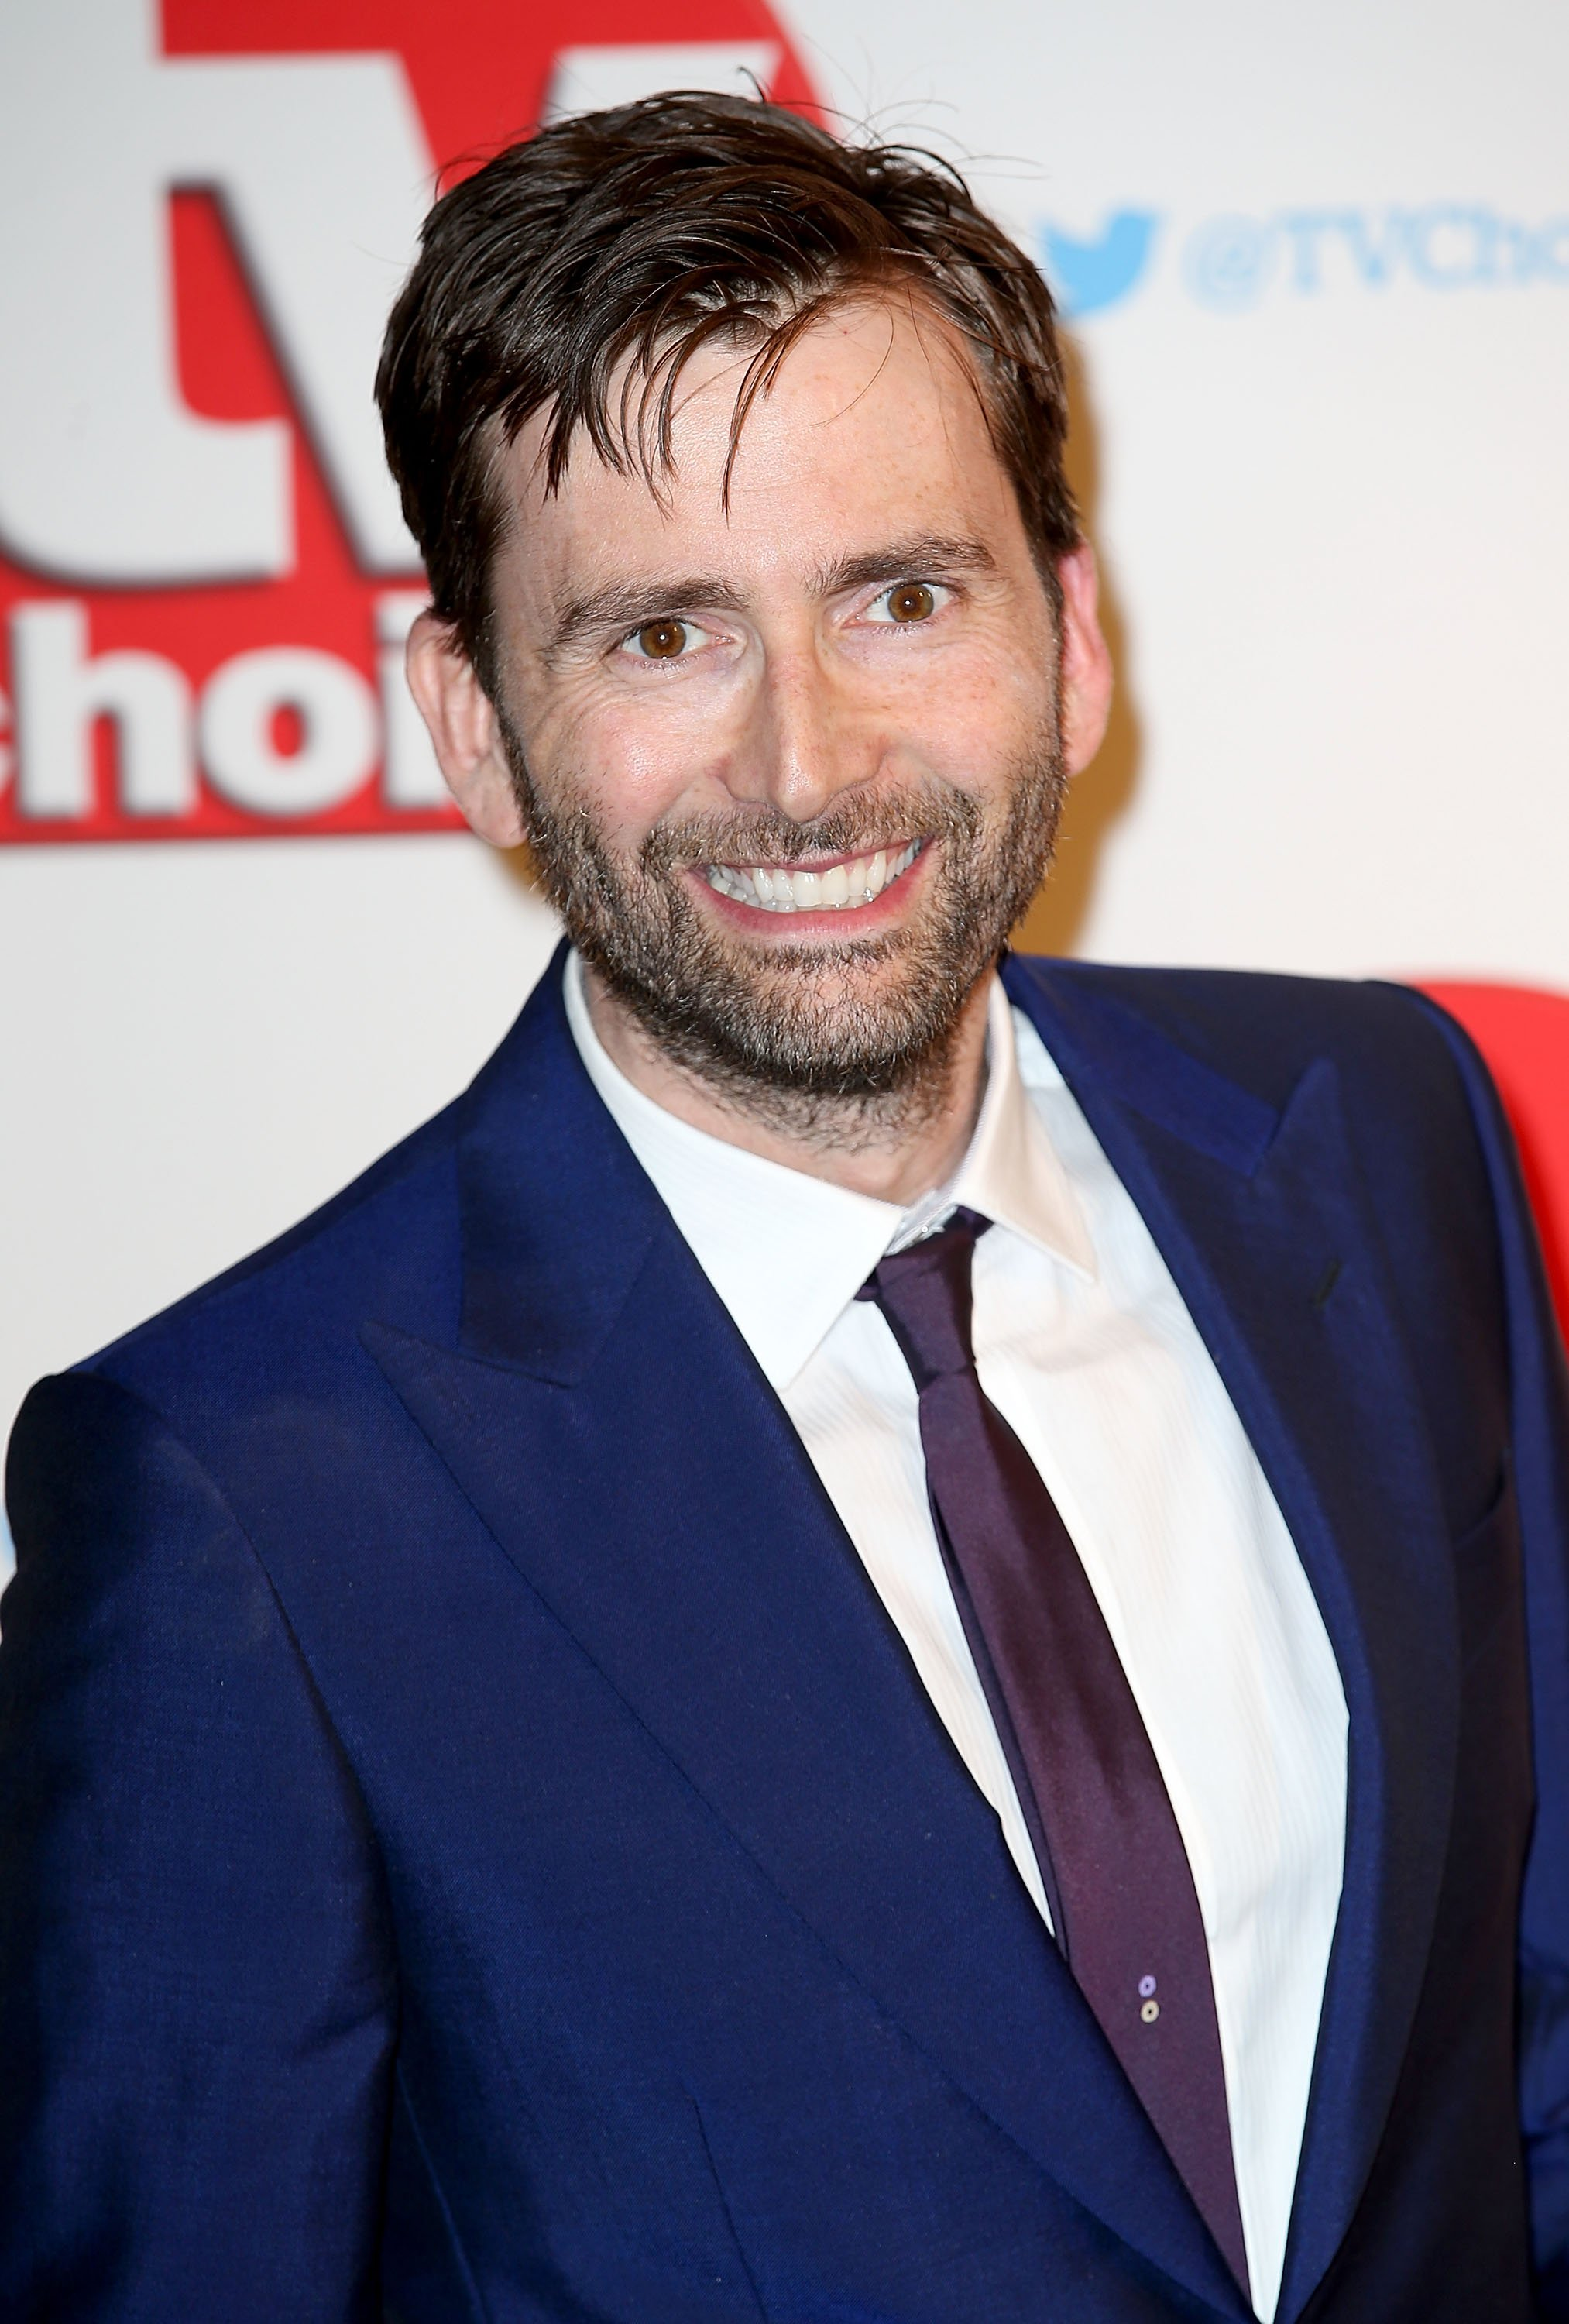 David Tennant attends the TV Choice Awards 2015 at Hilton Park Lane on September 7, 2015 in London